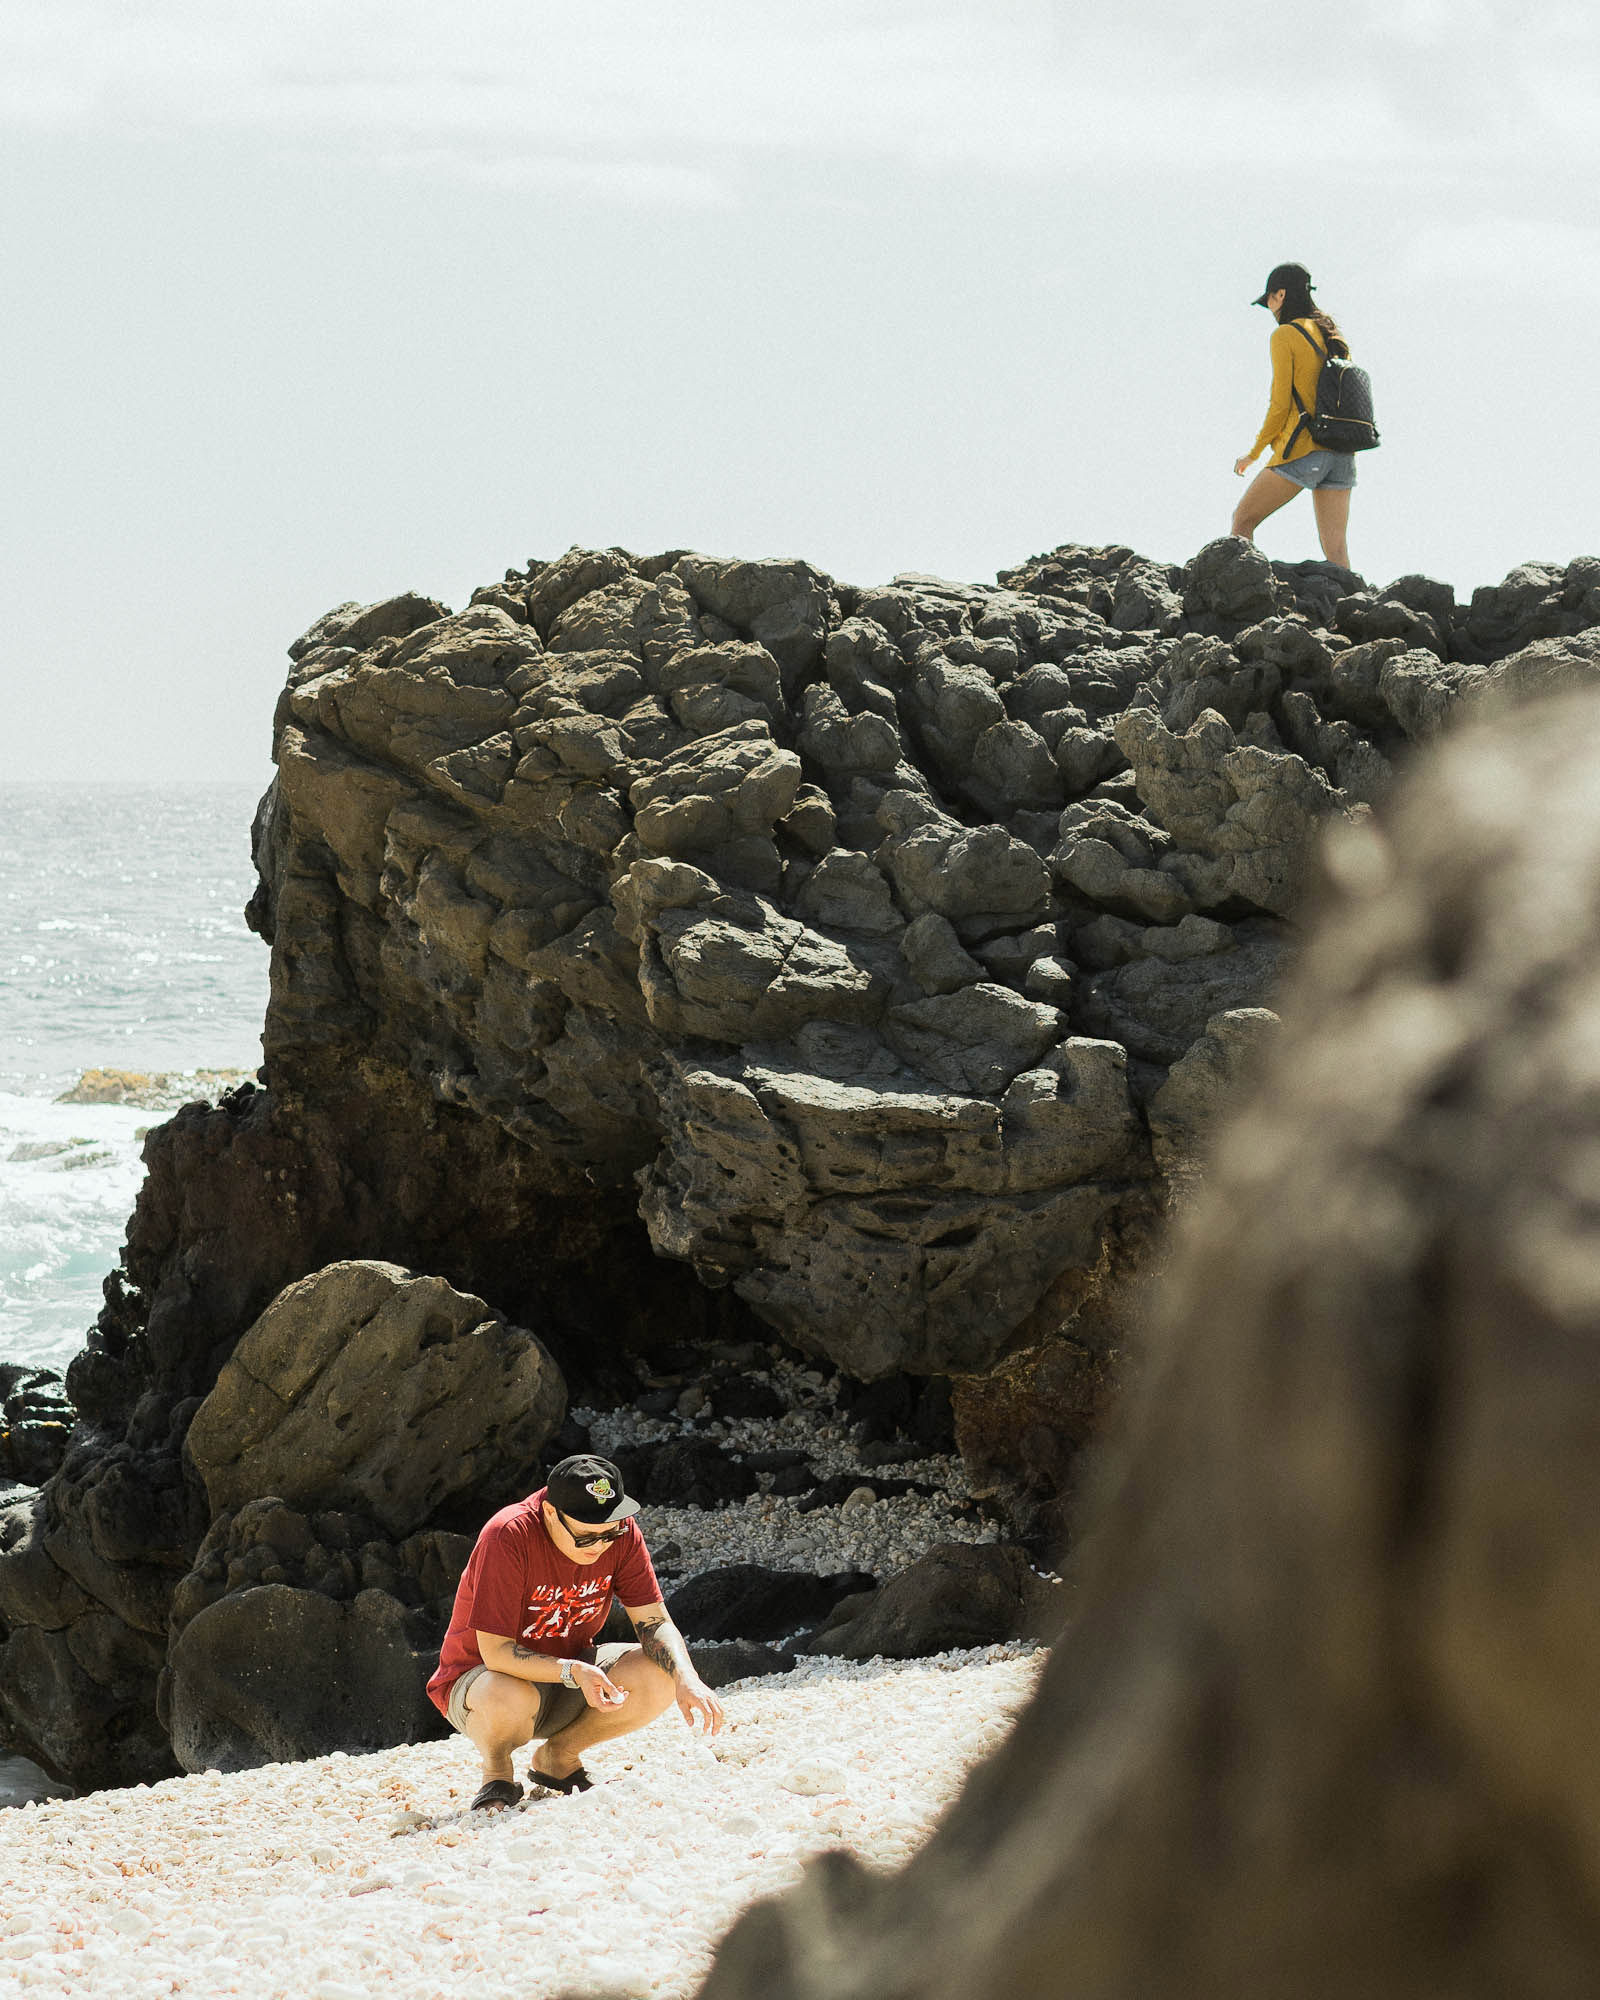 Artists Sixcoin and Tran Nguyen exploring Kaʻena Point, the western most tip of O'ahu.